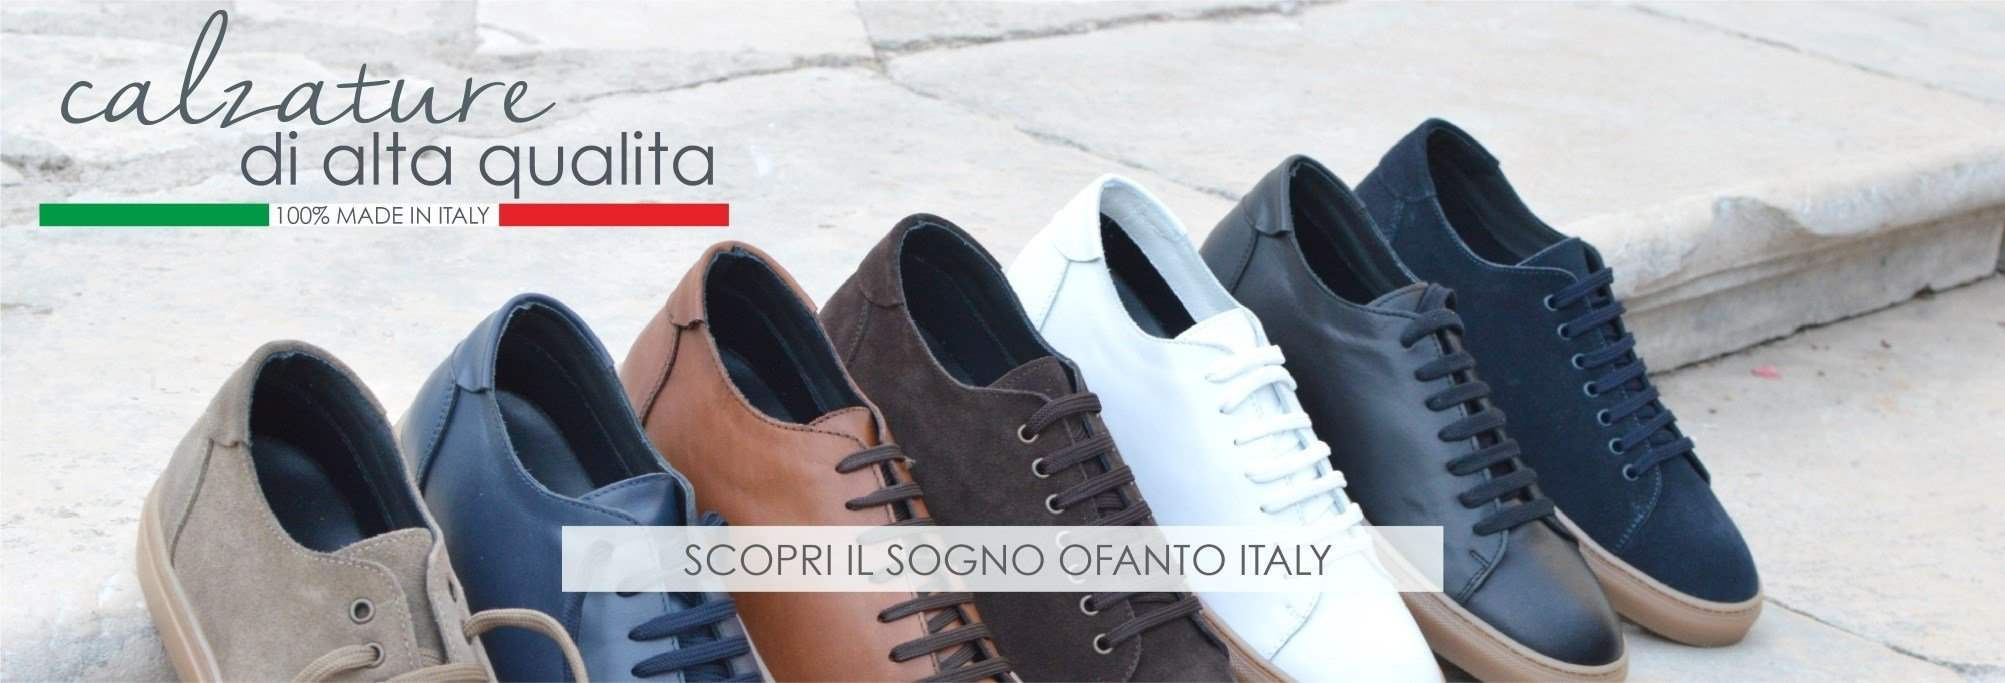 Made in Italy Slip-on and Loafers for Men, Ofanto Italy